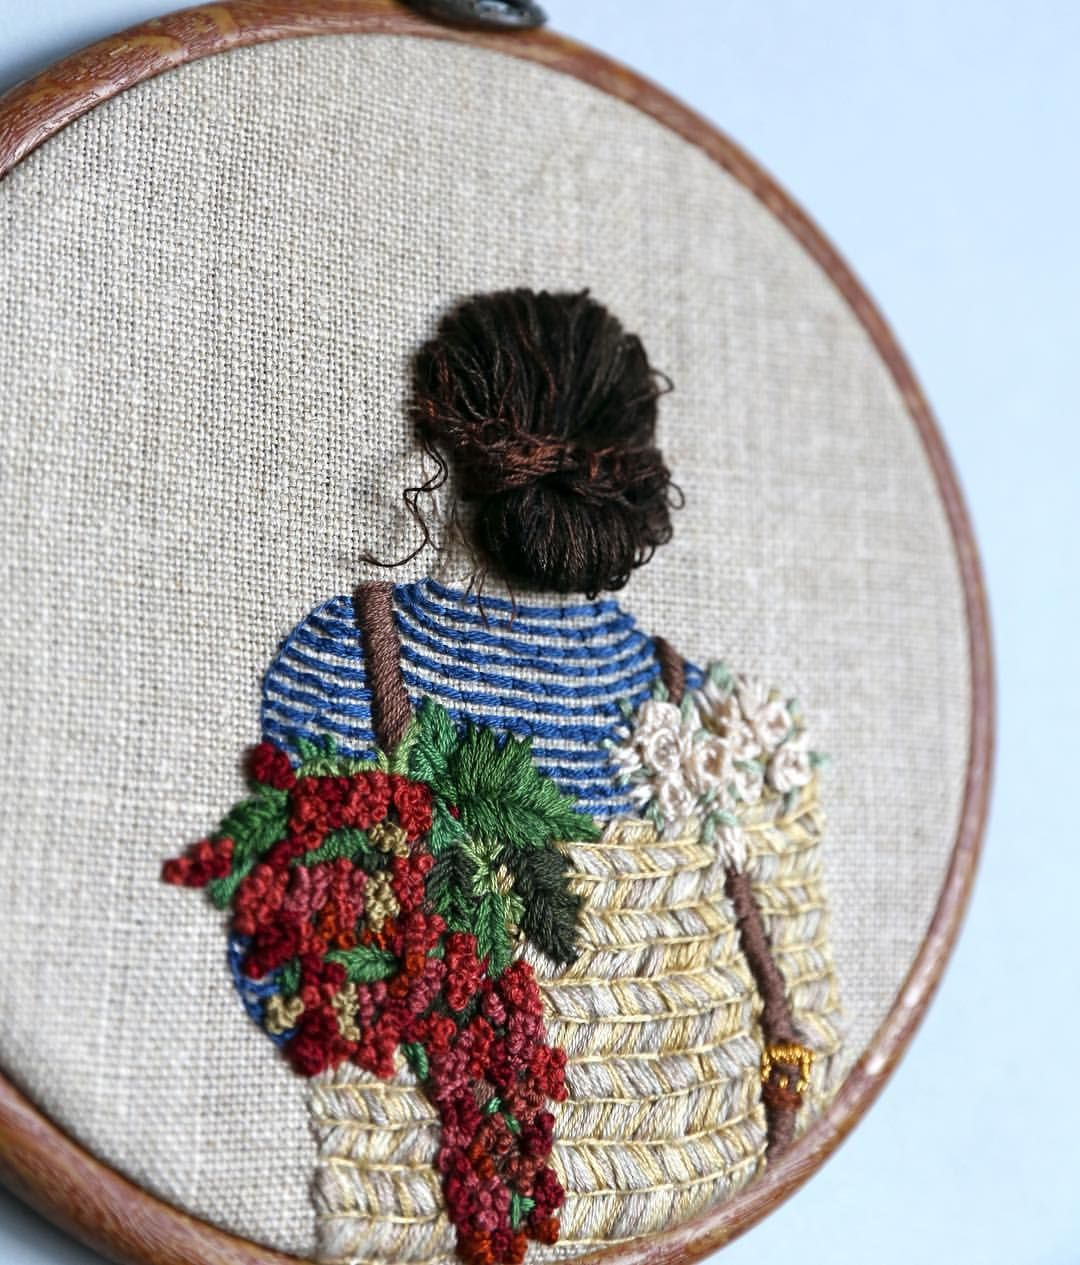 Pin By By The Bay Needleart On Embroidery Stitching N More